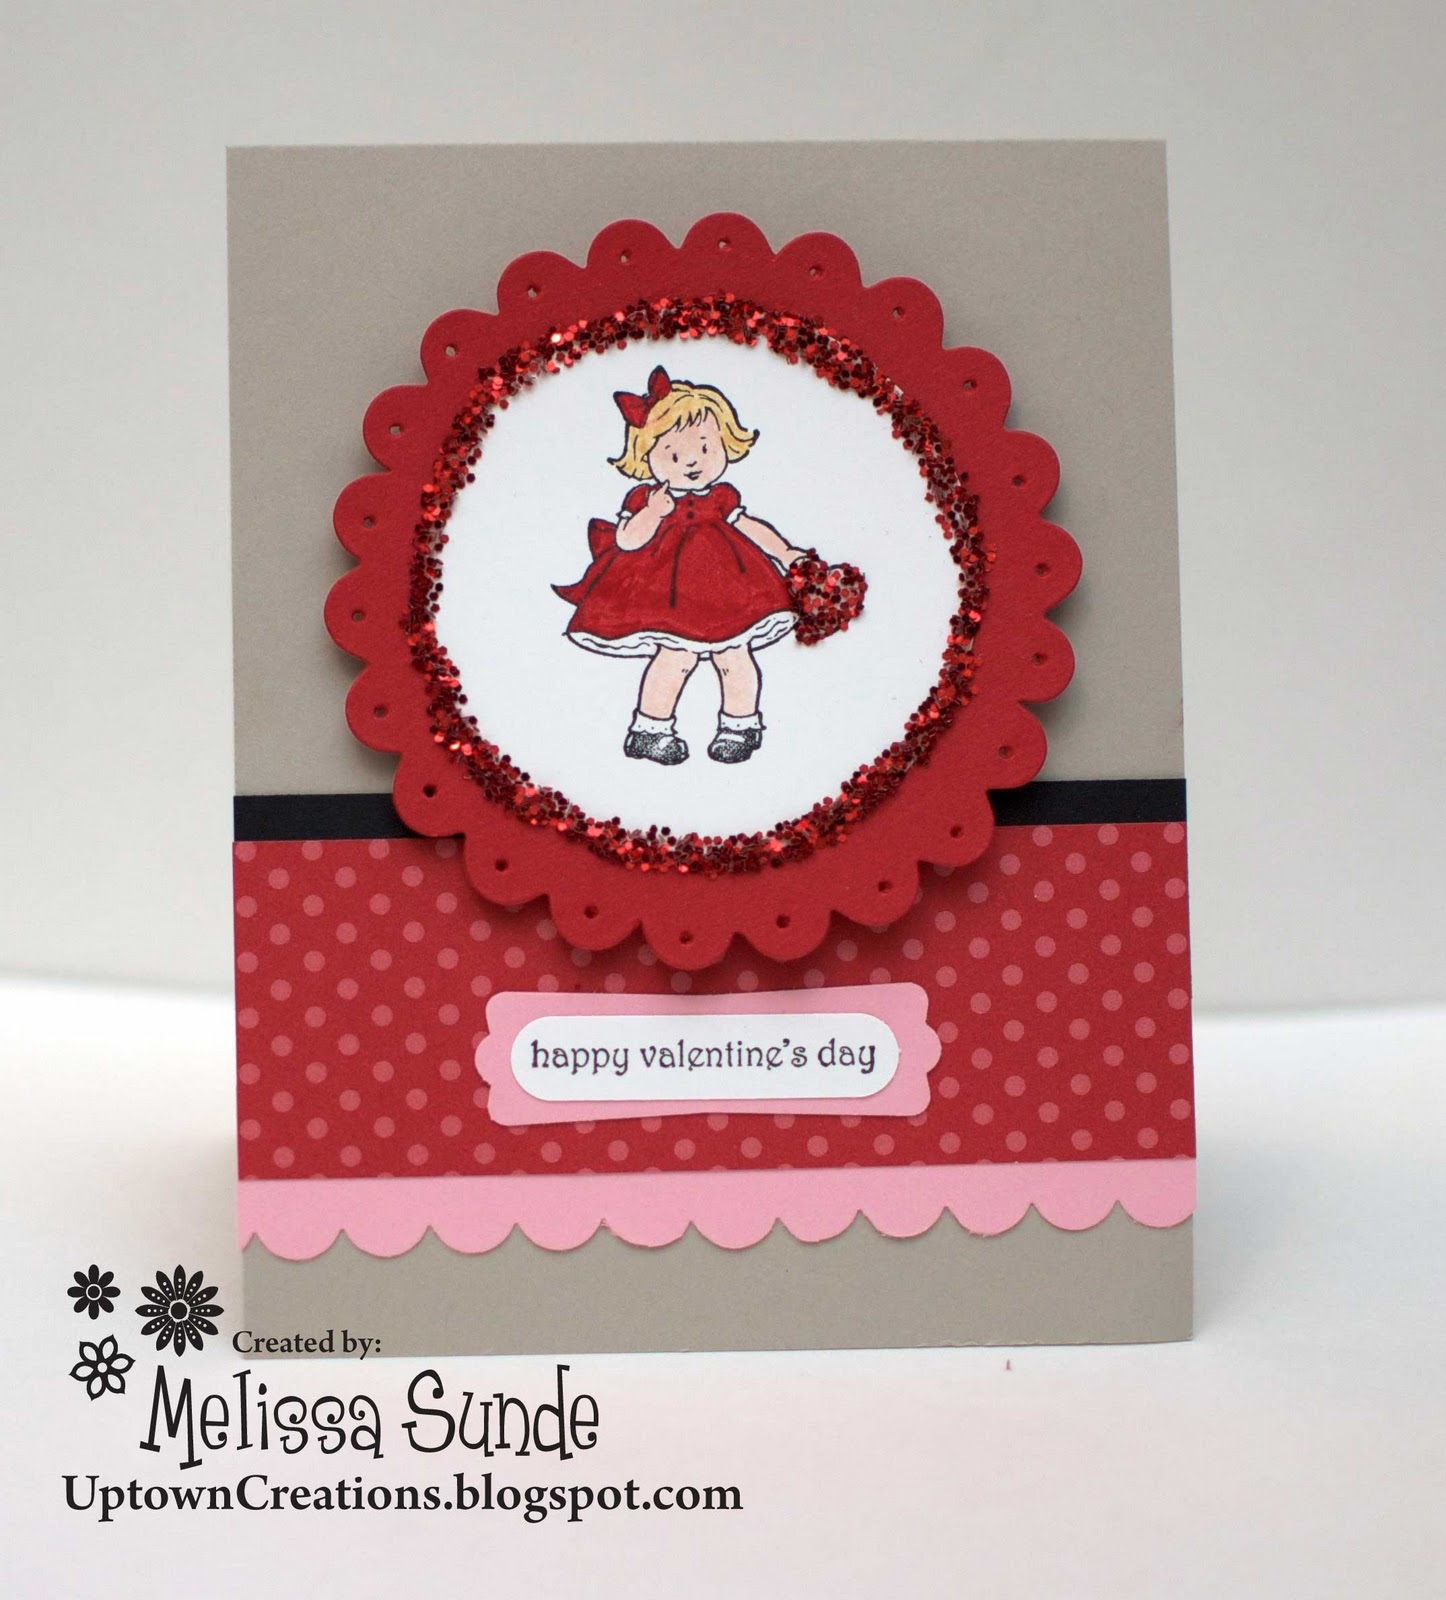 Uptown creations stampin up independent demonstrator january january stamp club girls night out cards kristyandbryce Image collections